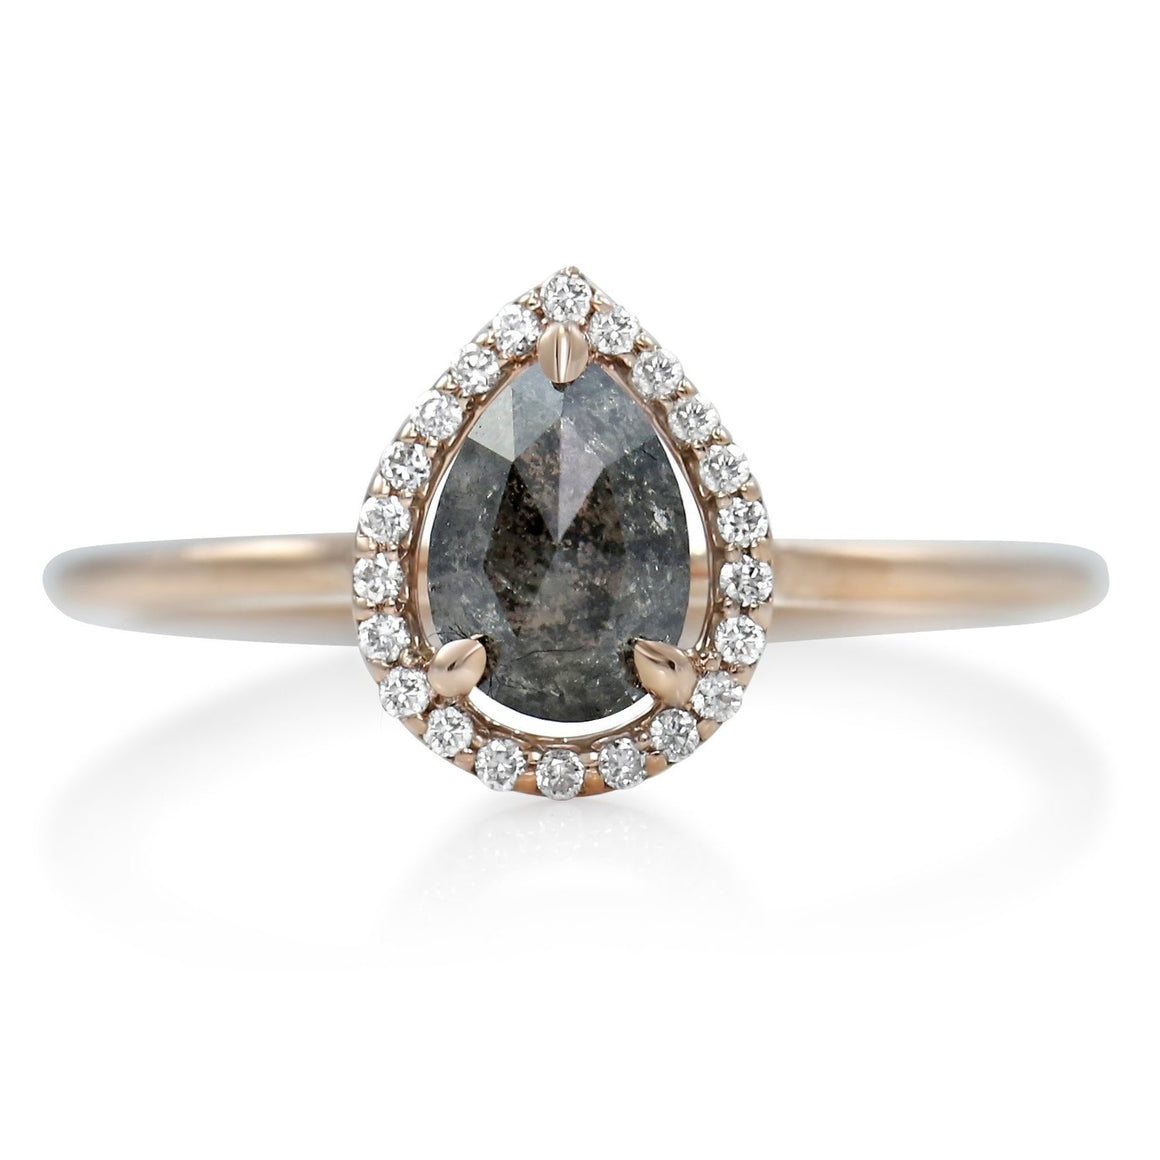 pear shaped gray diamond right hand ring with a white diamond halo and rose gold band